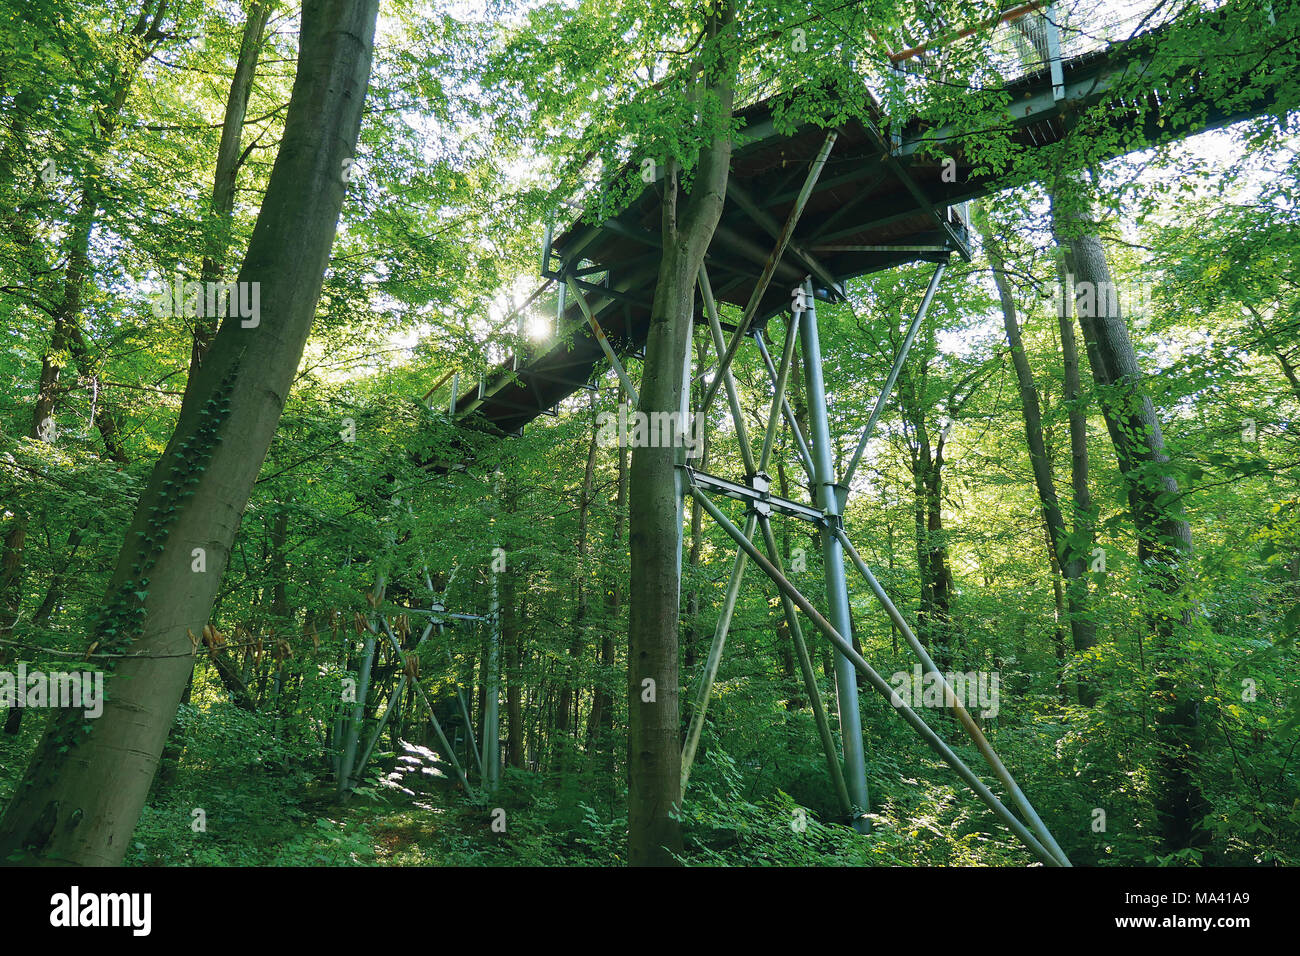 The treetop walkway in the Hainich National Park through the beech tree in Thuringia, Germany Stock Photo